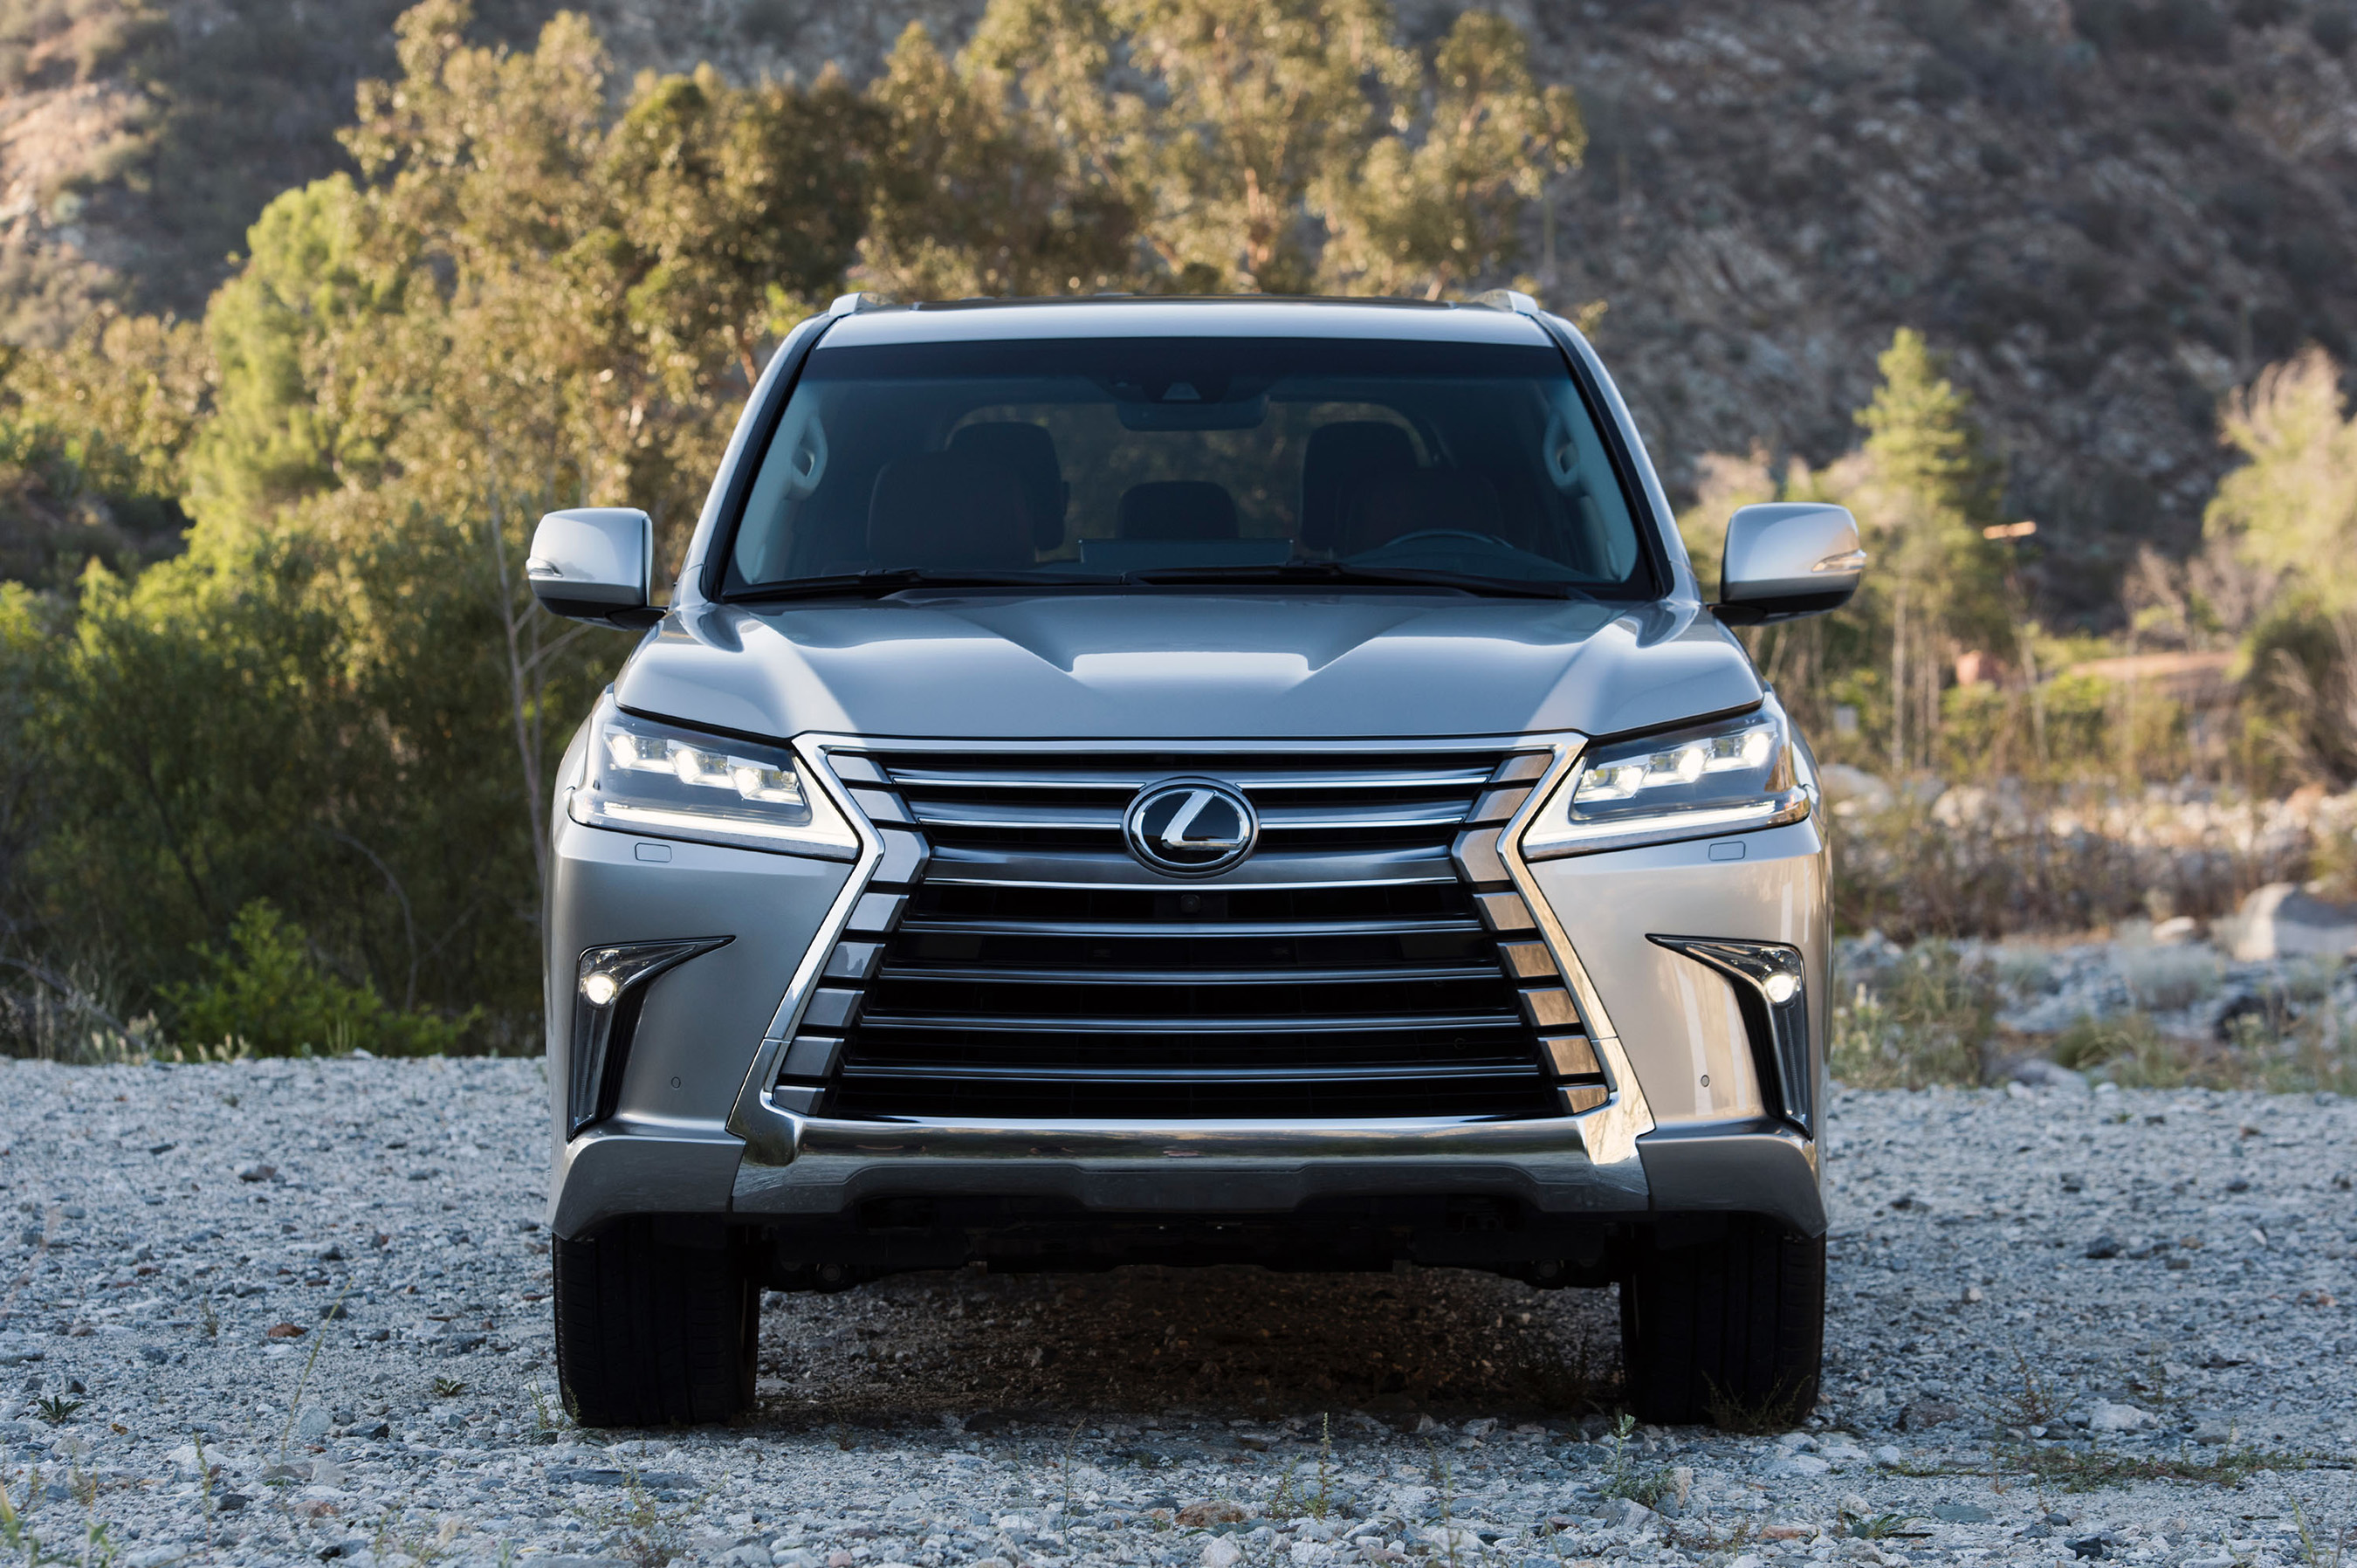 Mingling with the classics lexus introduces refreshed 2016 lx 570 luxury utility vehicle and 2016 gs during pebble beach concours celebrations